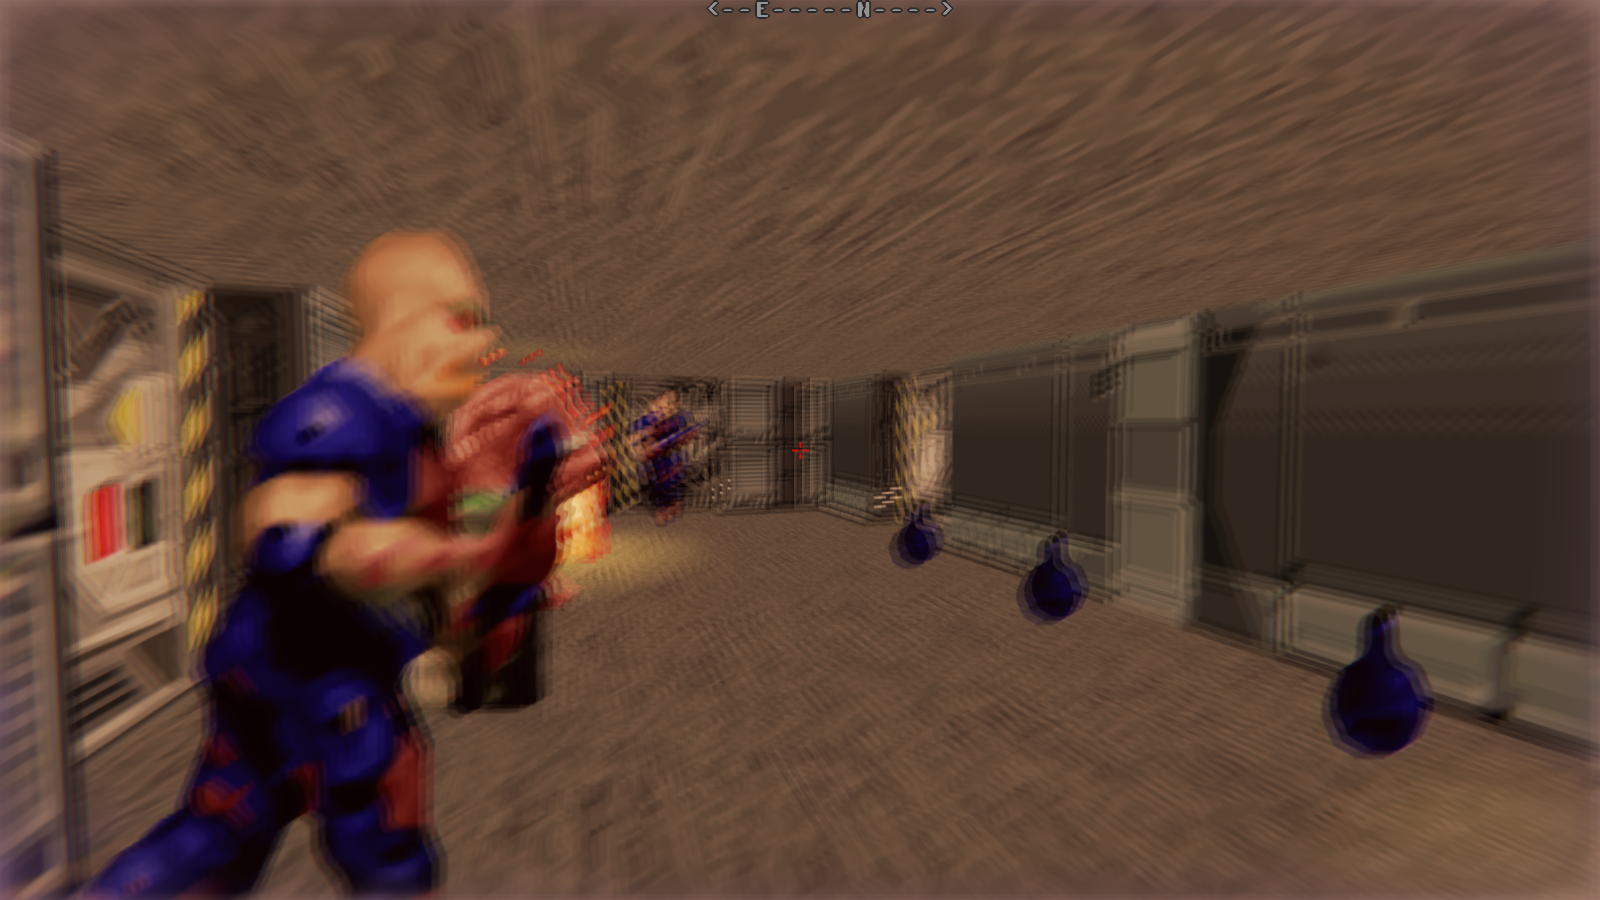 DRRP Doom RPG Remake Project SEC5 Sector 5 Zombie Lt Damage Splash Cinematic Shader Screenshot